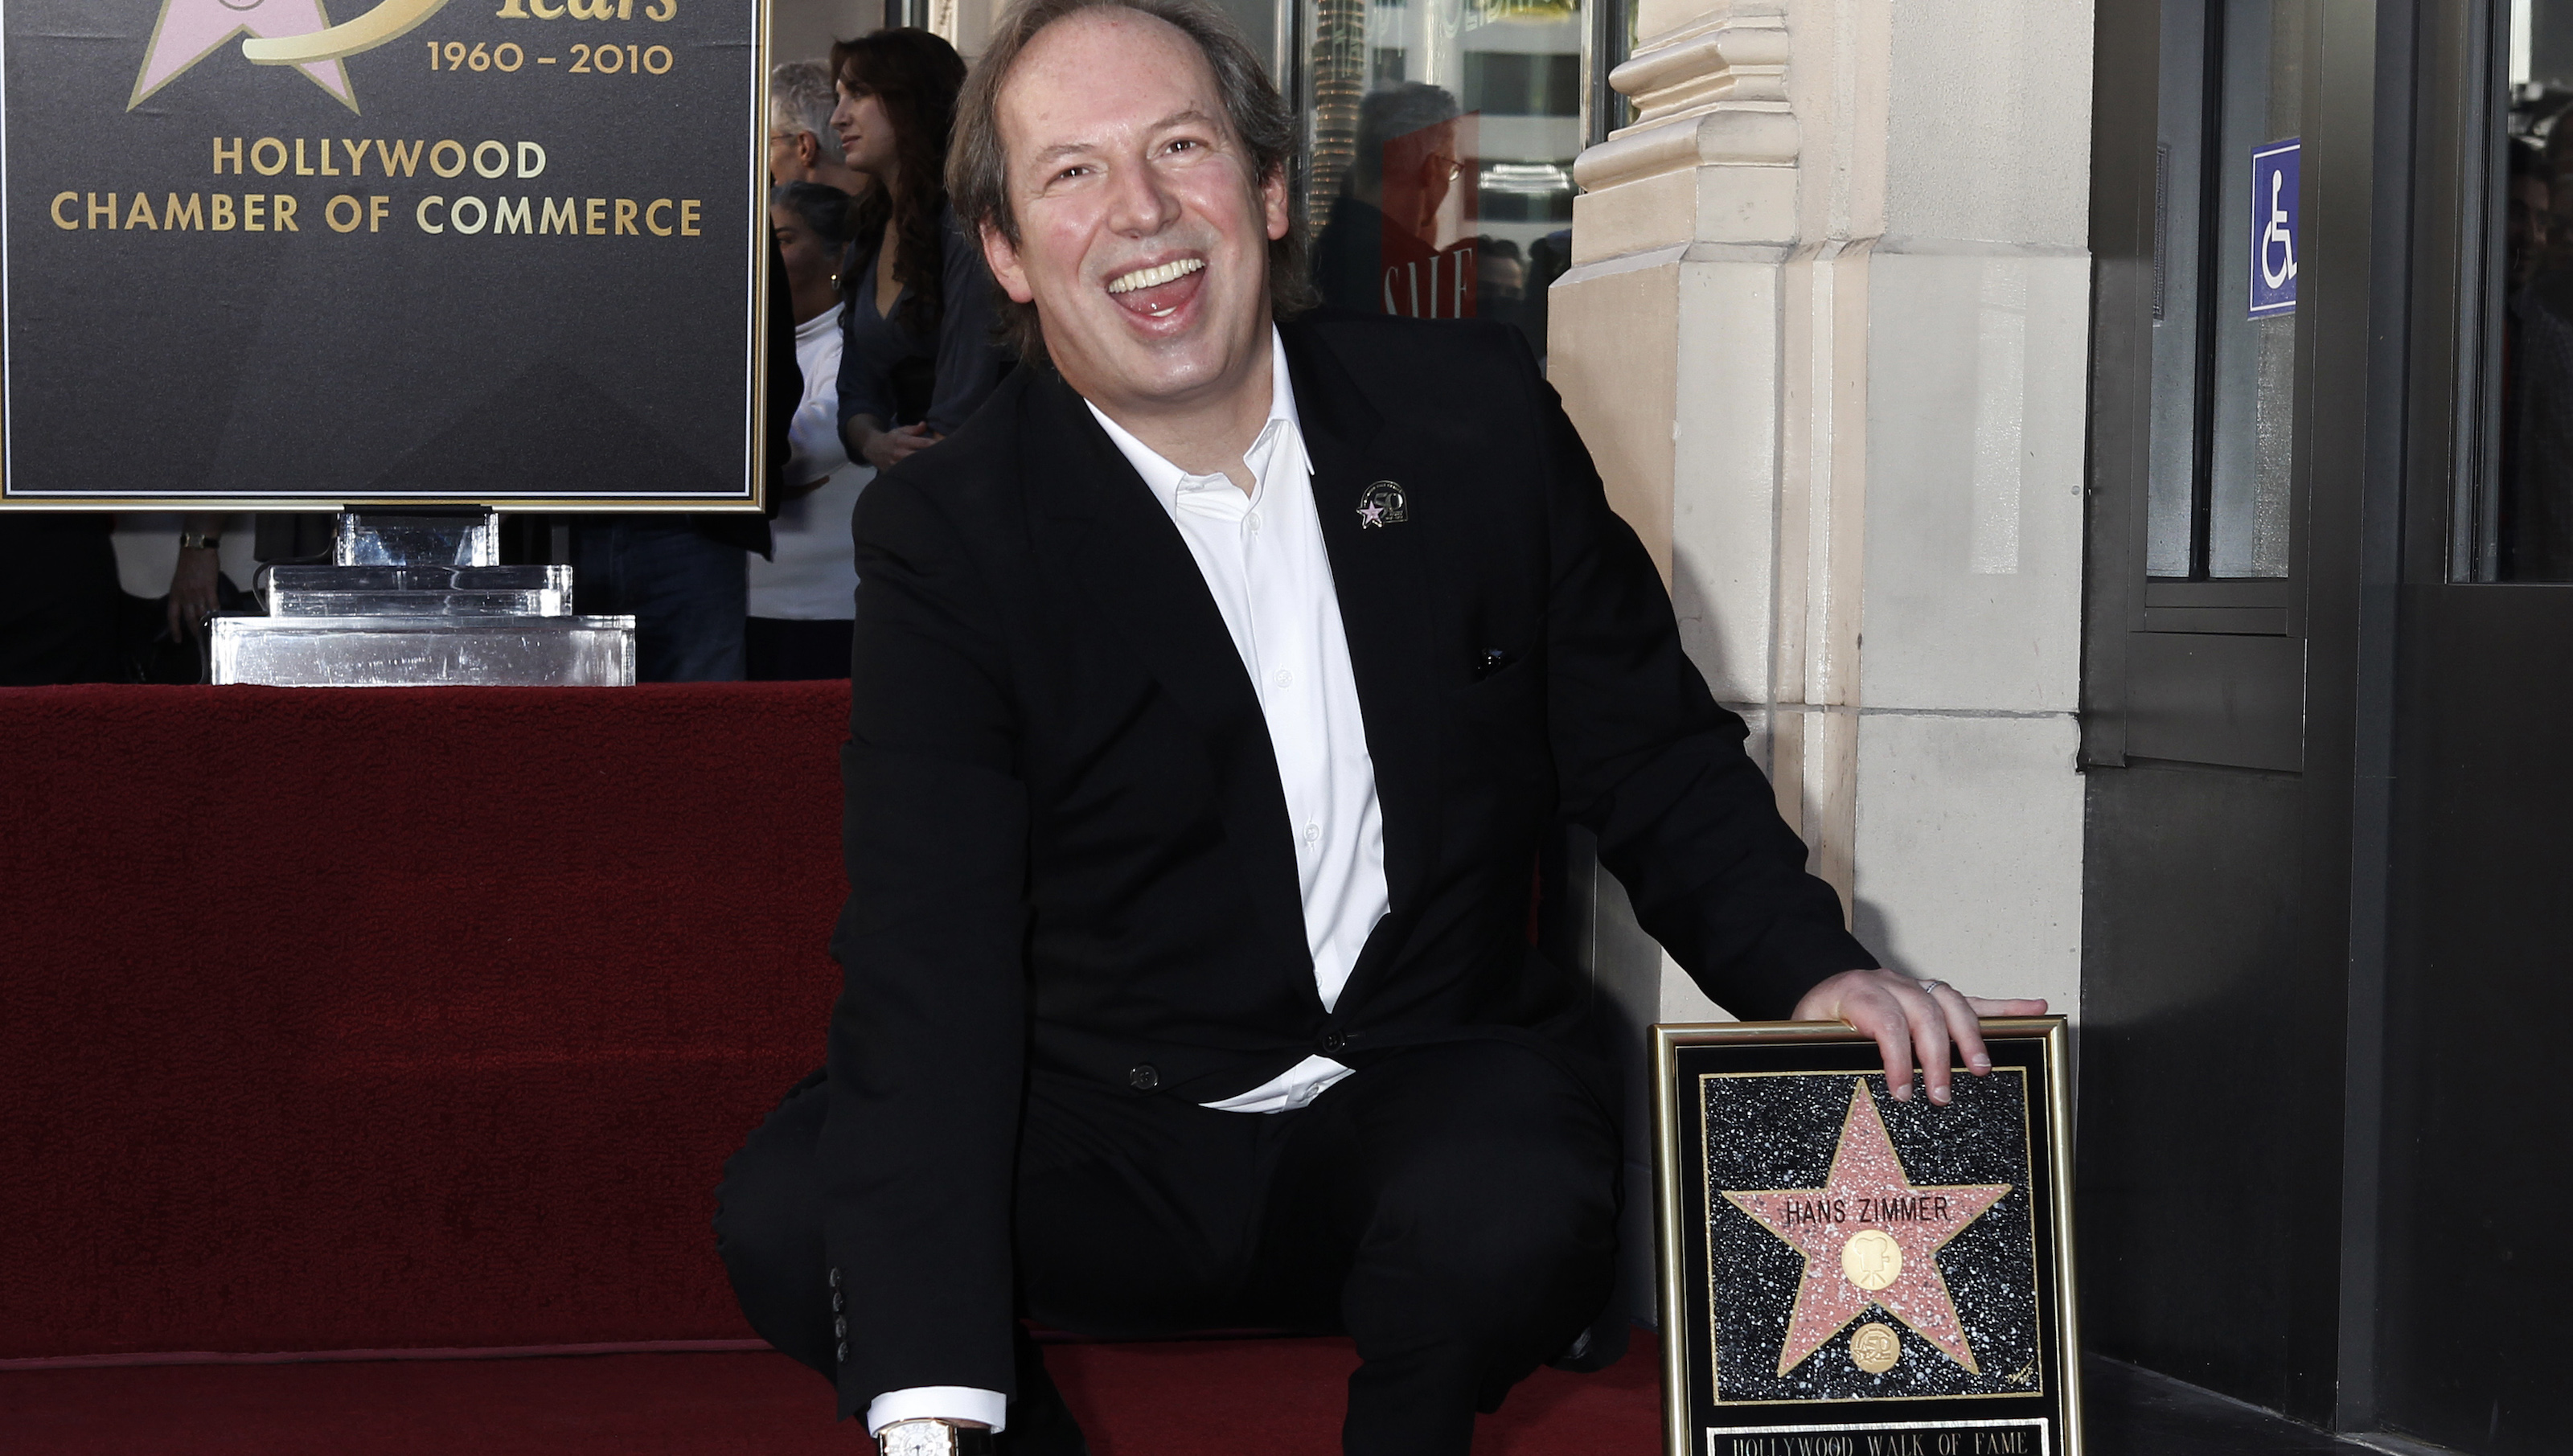 Academy Award winning German-born composer Hans Zimmer touches his newly unveiled star on the Hollywood Walk of Fame in Hollywood December 8, 2010.  REUTERS/Fred Prouser (UNITED STATES - Tags: ENTERTAINMENT) - RTXVJKR